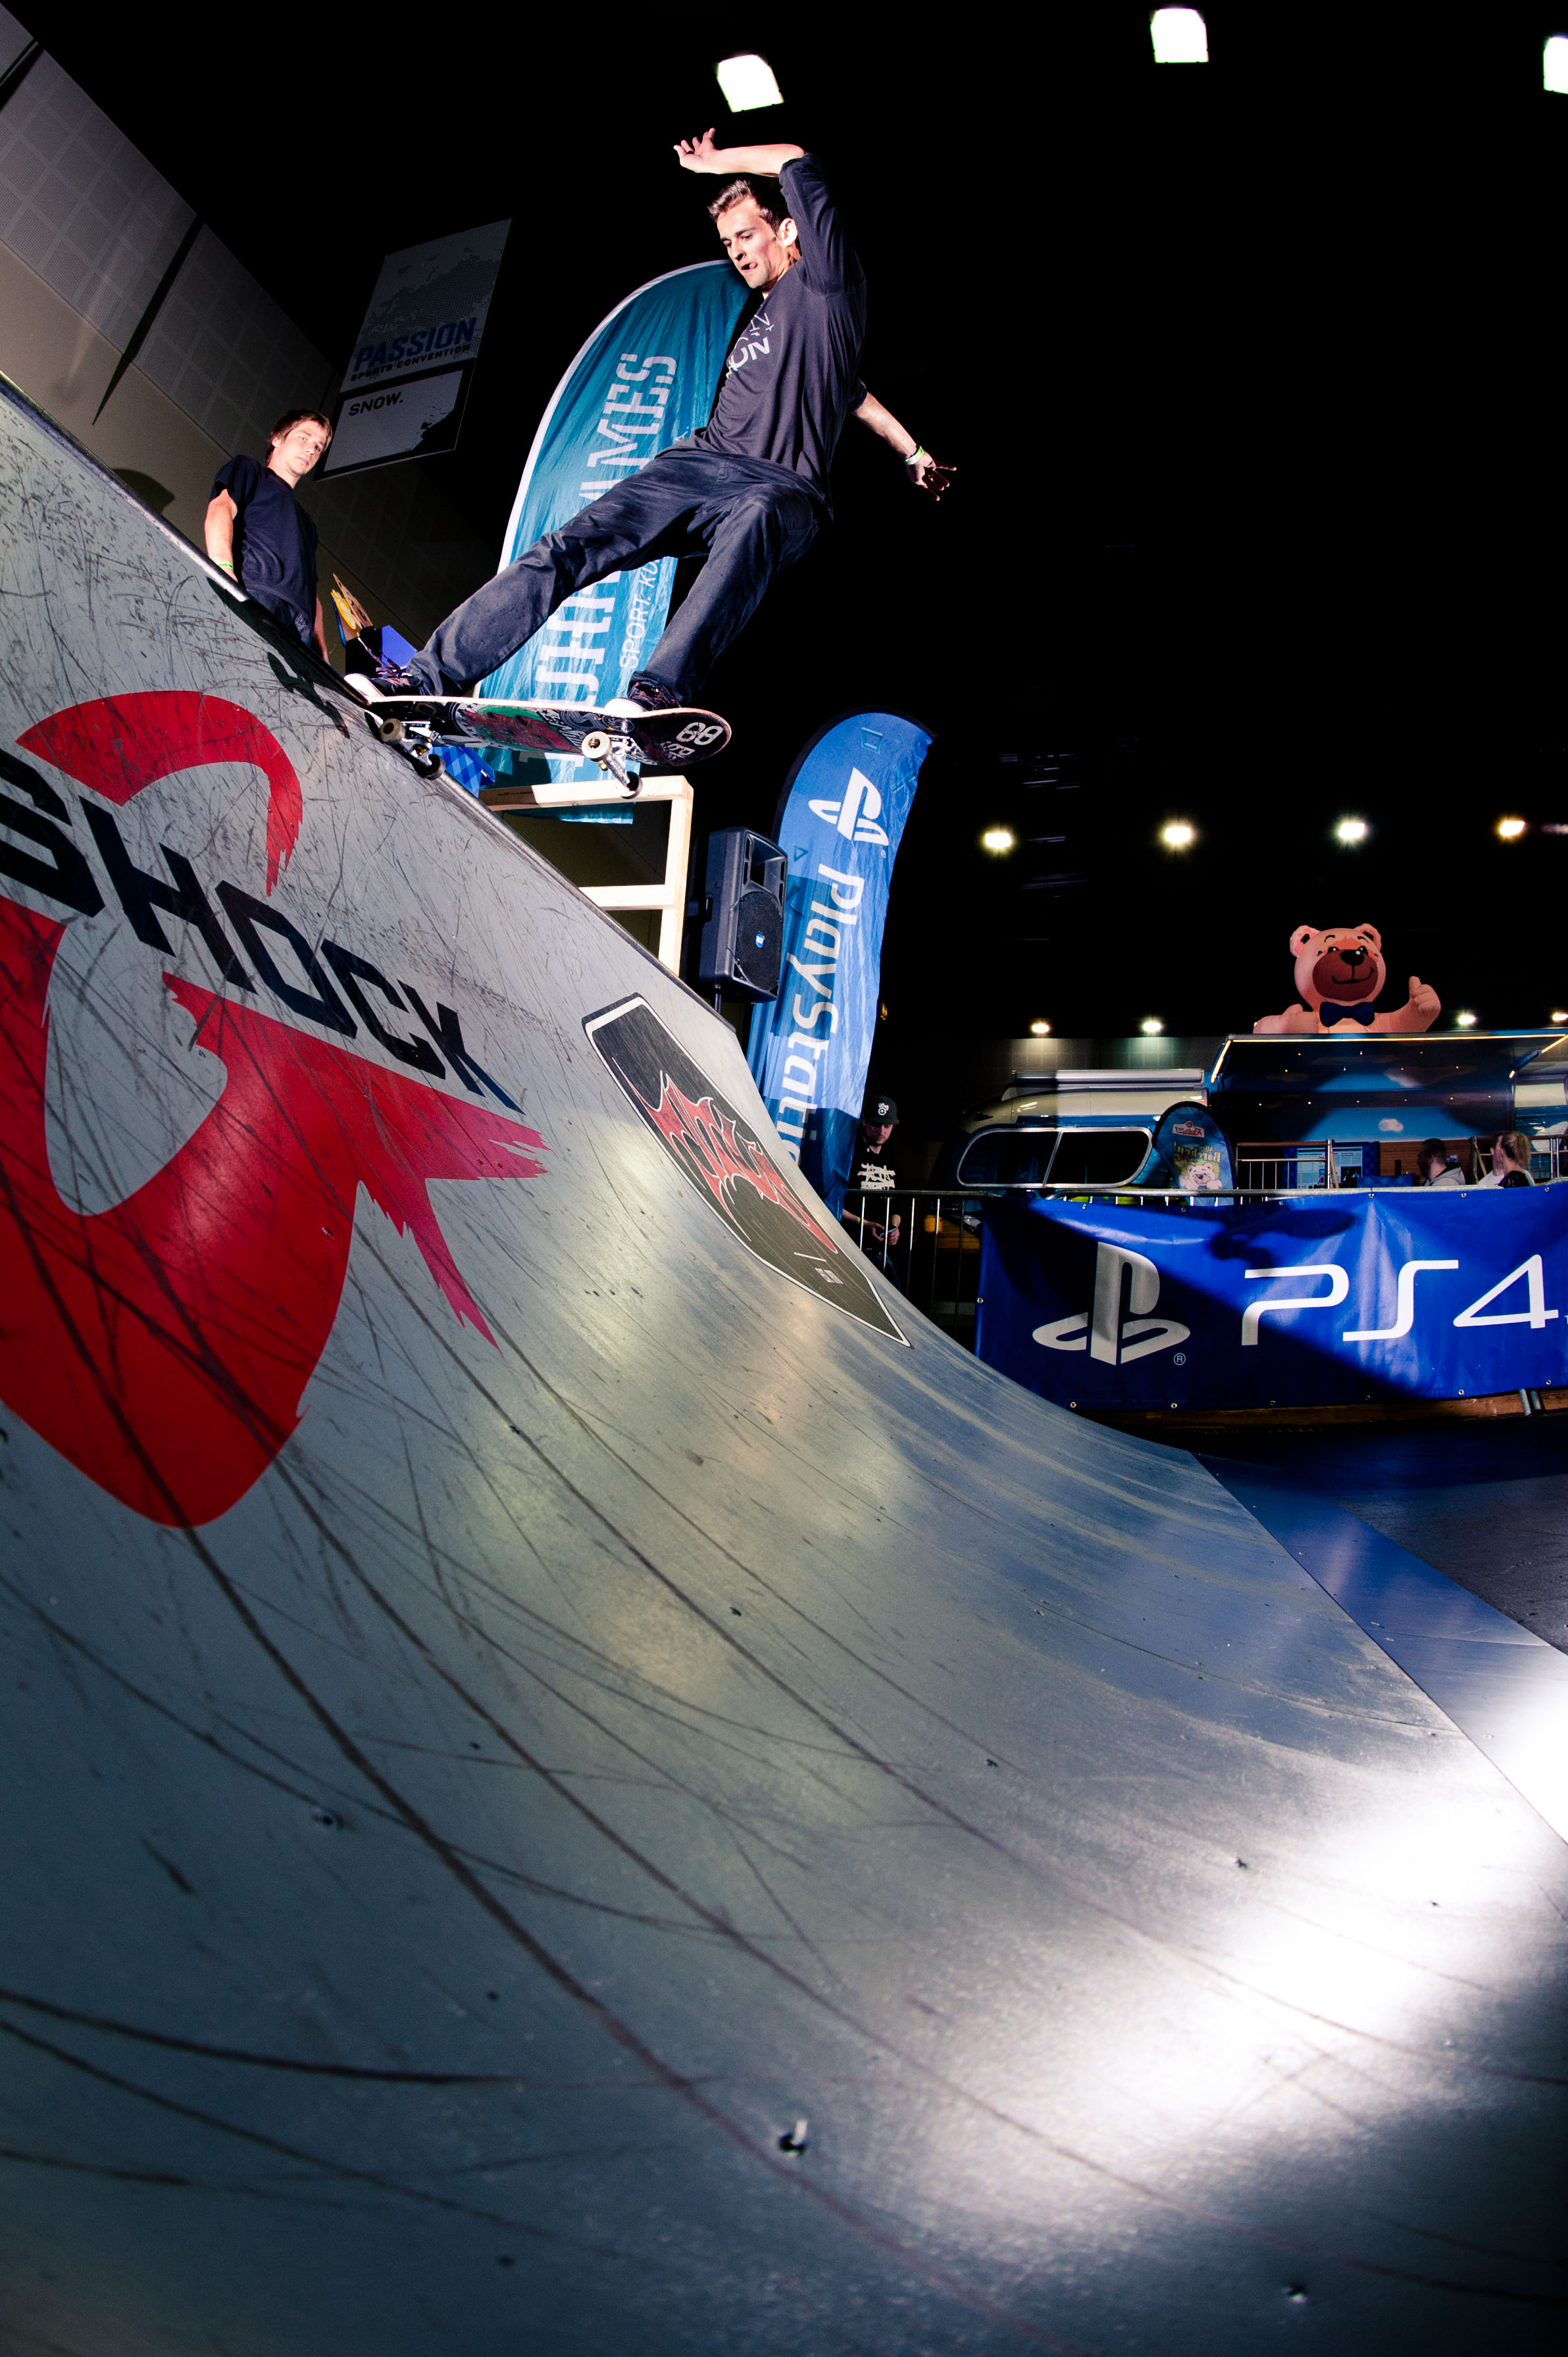 Impressions PlayStation 4 COS Cup 2015 | Passion Sports Convention Bremen